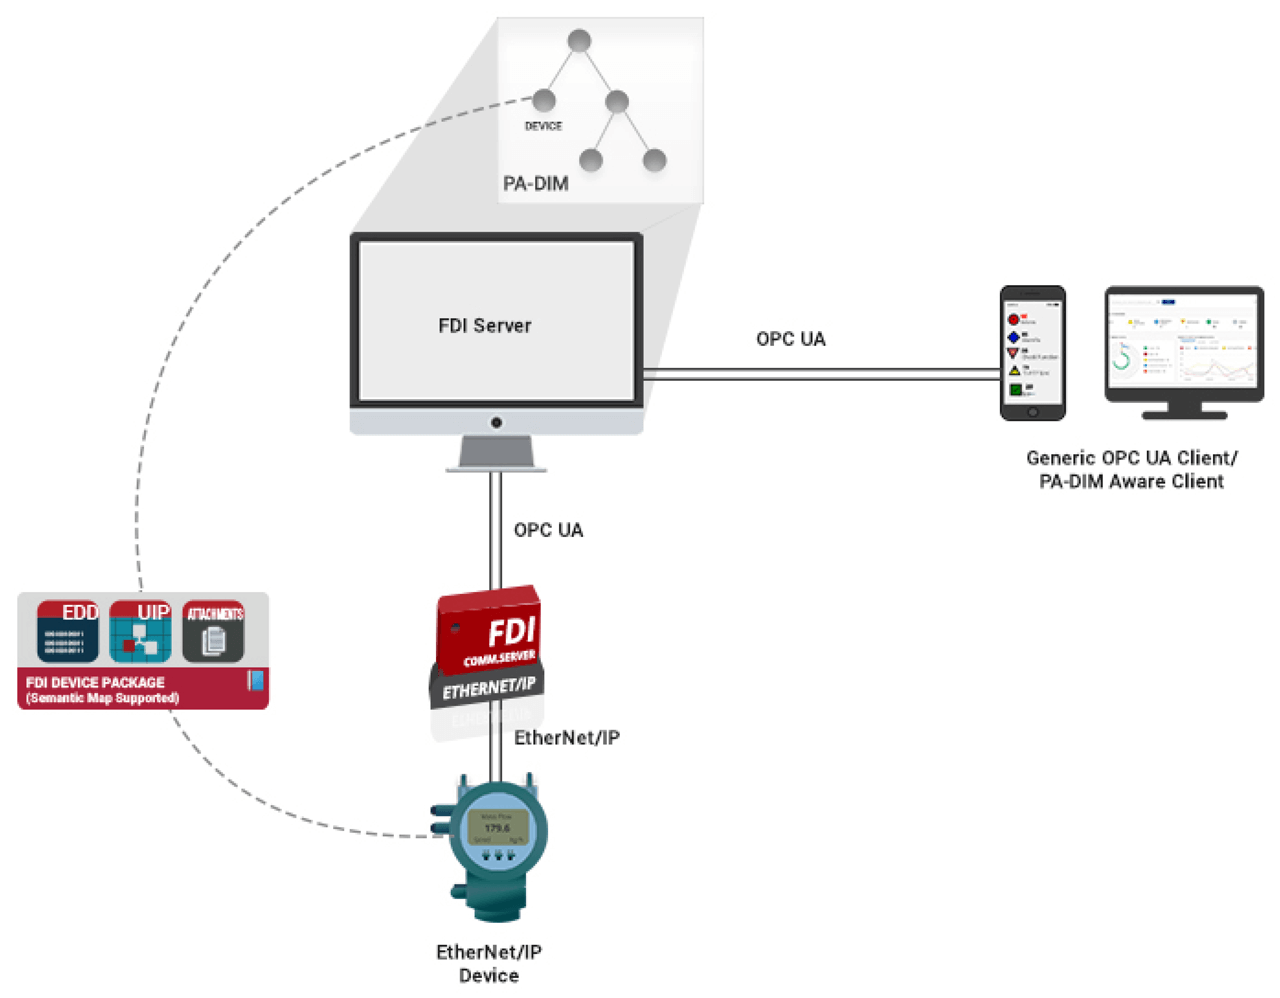 EtherNet/IP Device connected to PA-DIM Server.